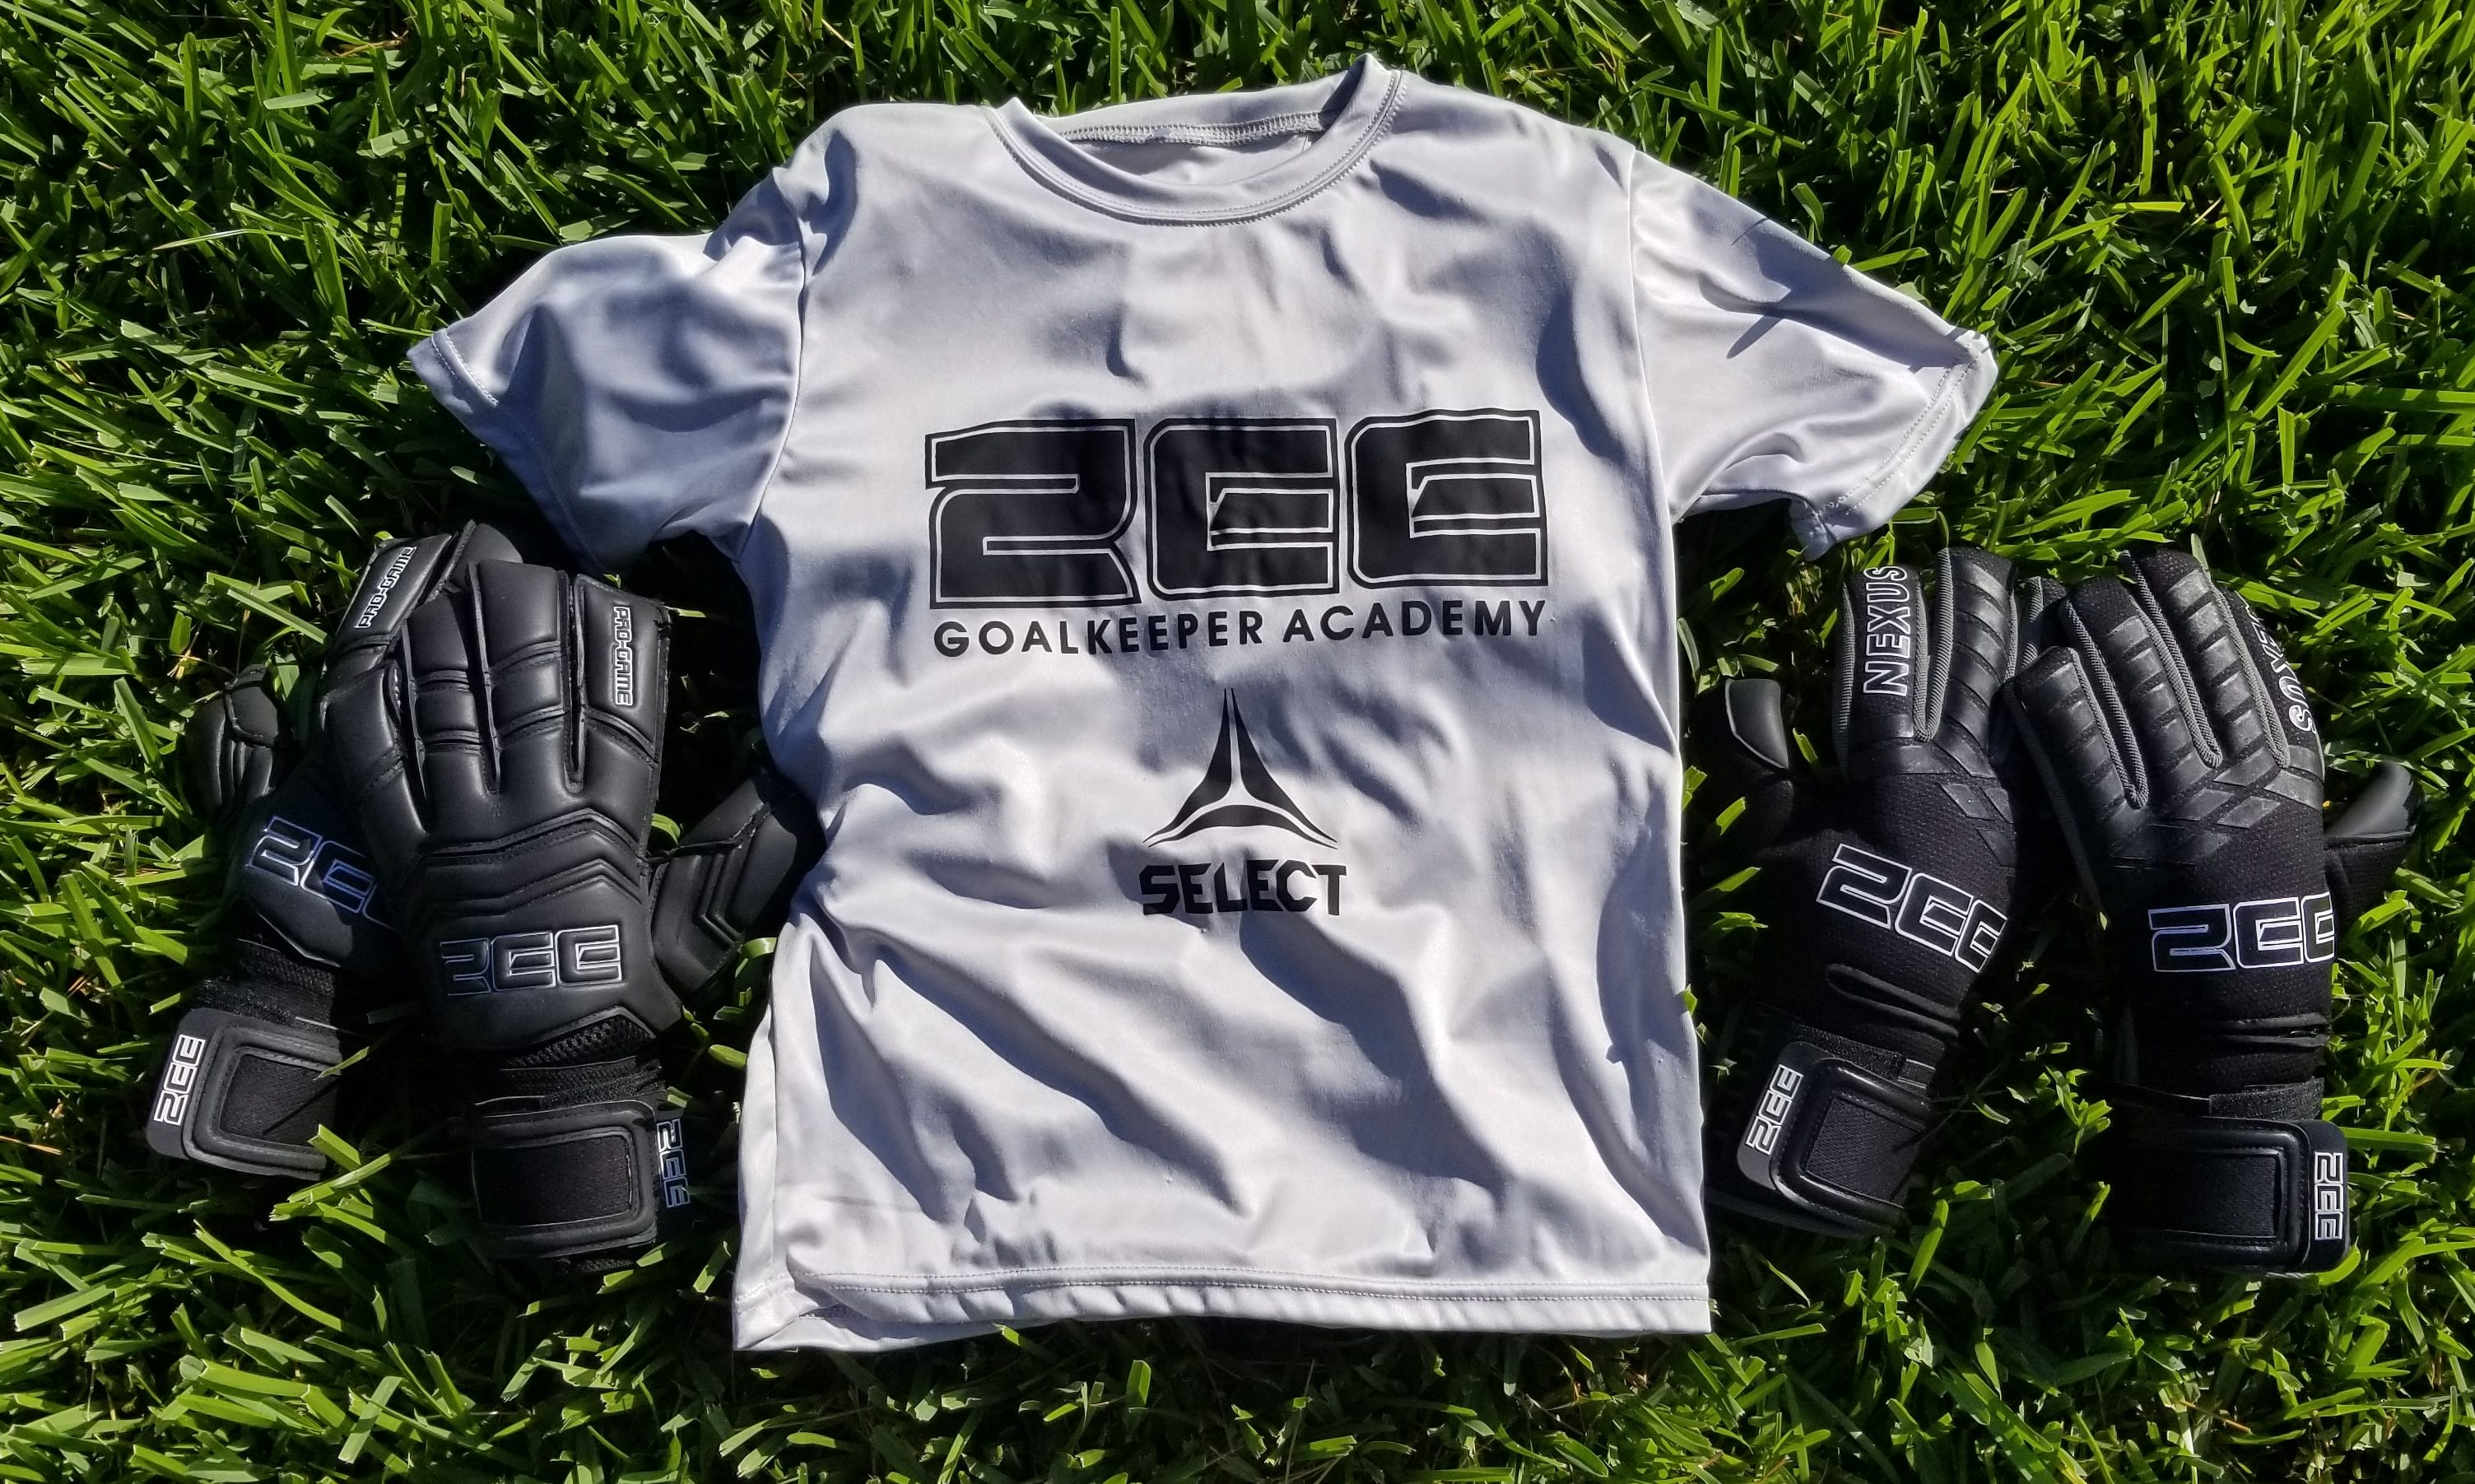 ZEE Goalkeeper T-shirt